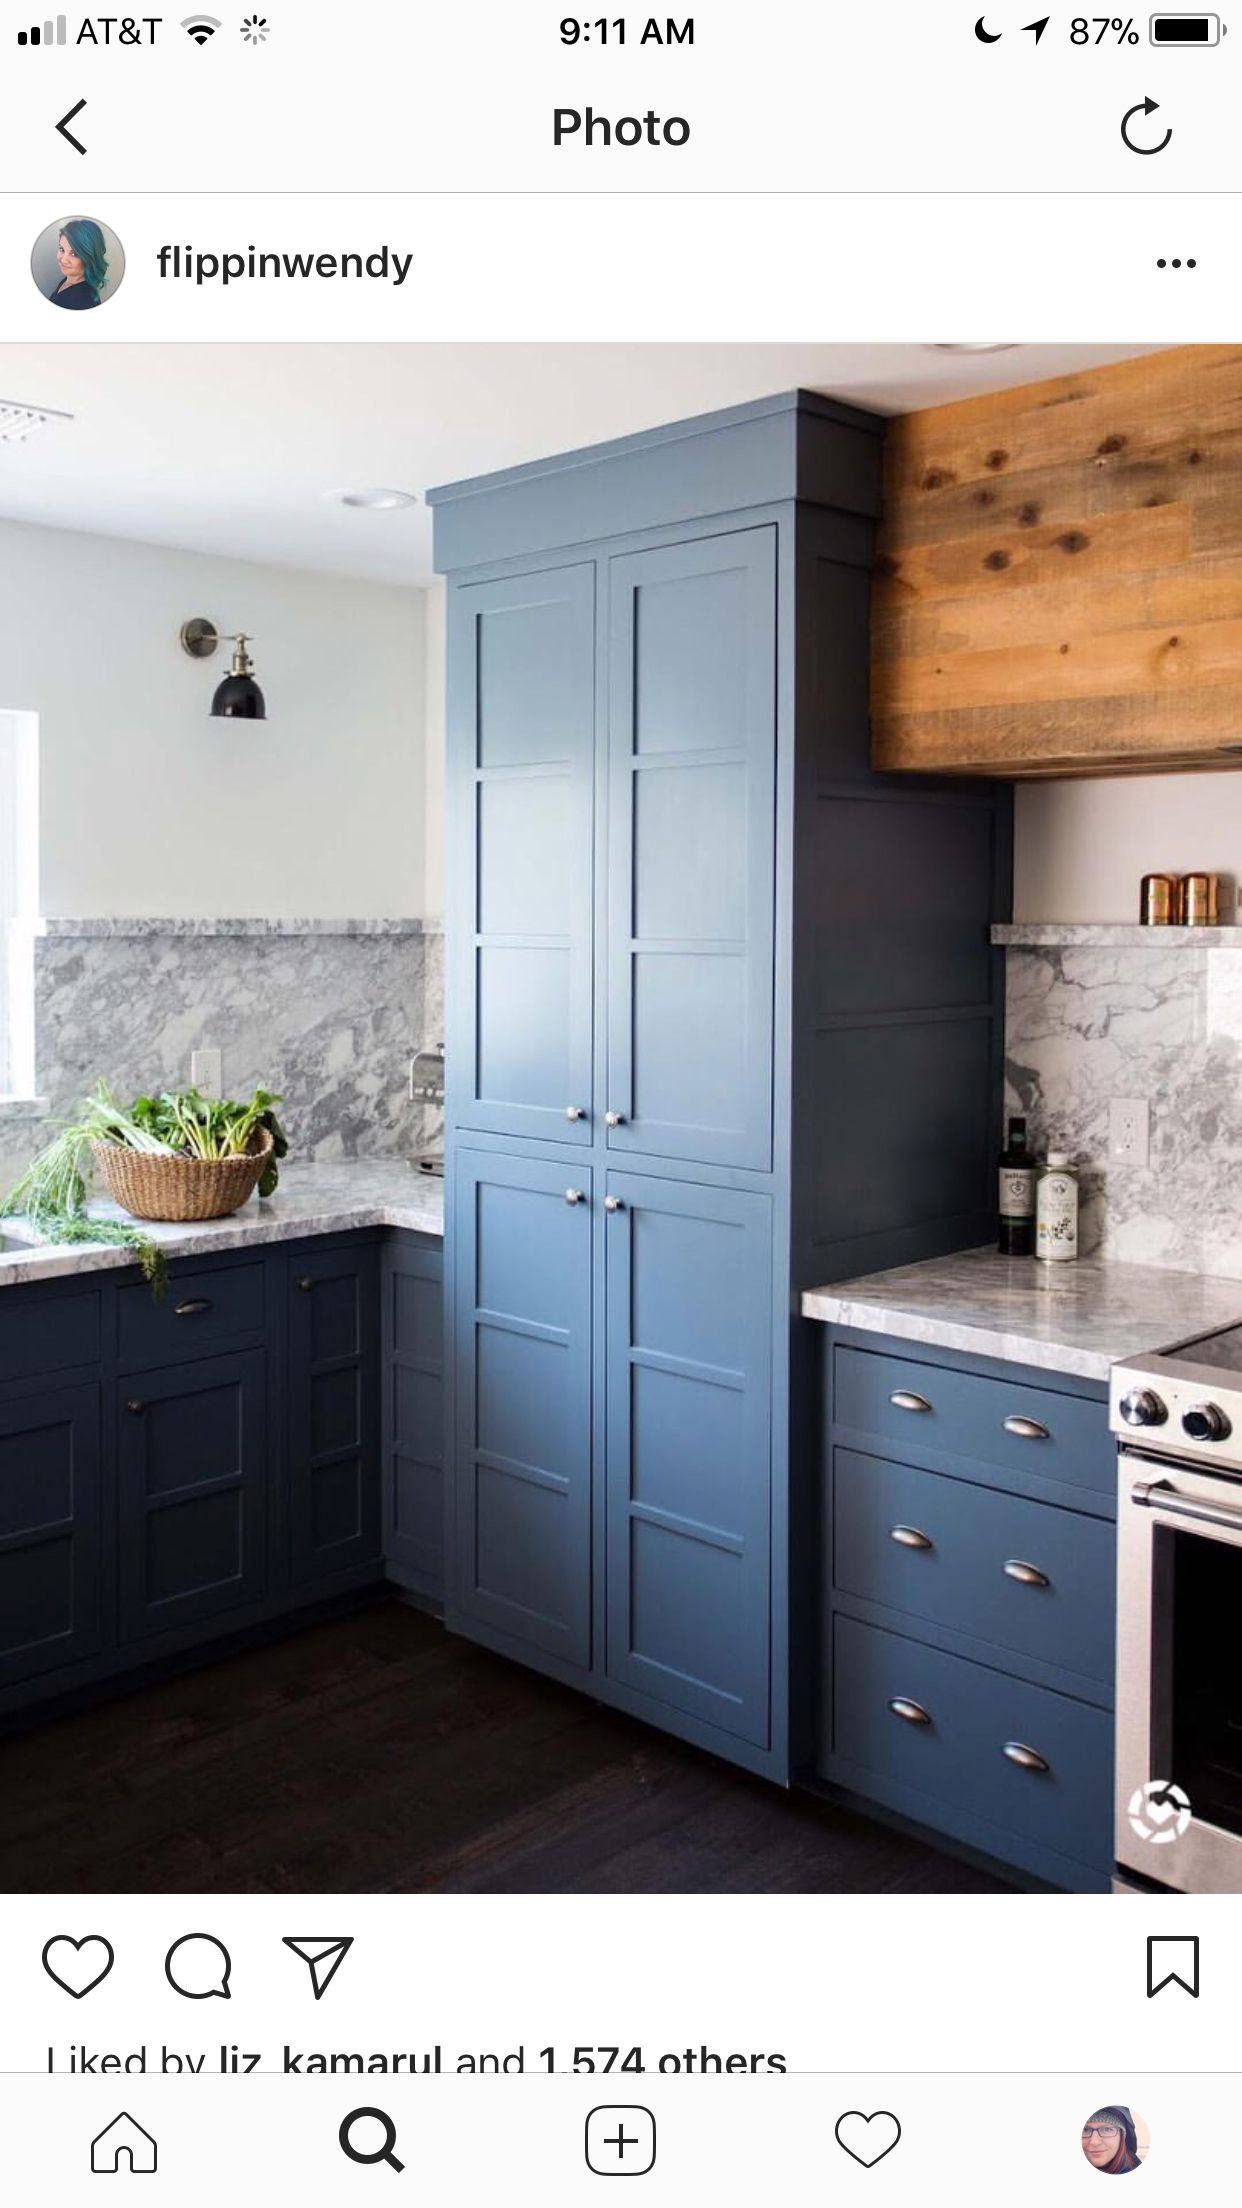 Pin by Victoria Robinson on KITCHEN | Pinterest | Spaces